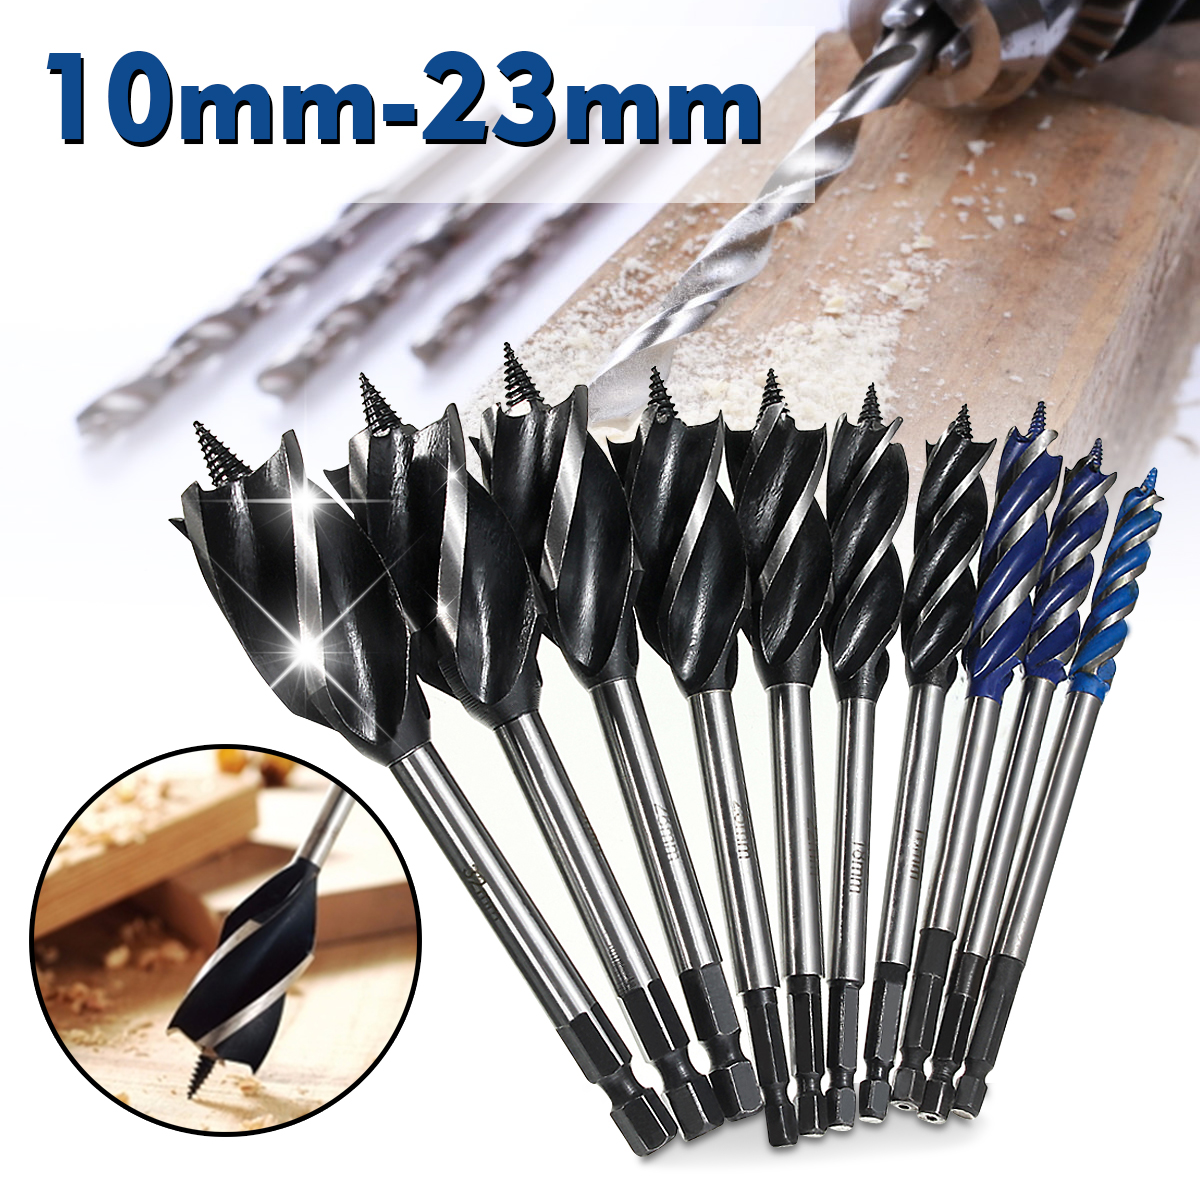 Long Auger Wood Drill Bits Hex Shank Joiner Carpenter Fast Cutting 6 x 460 mm